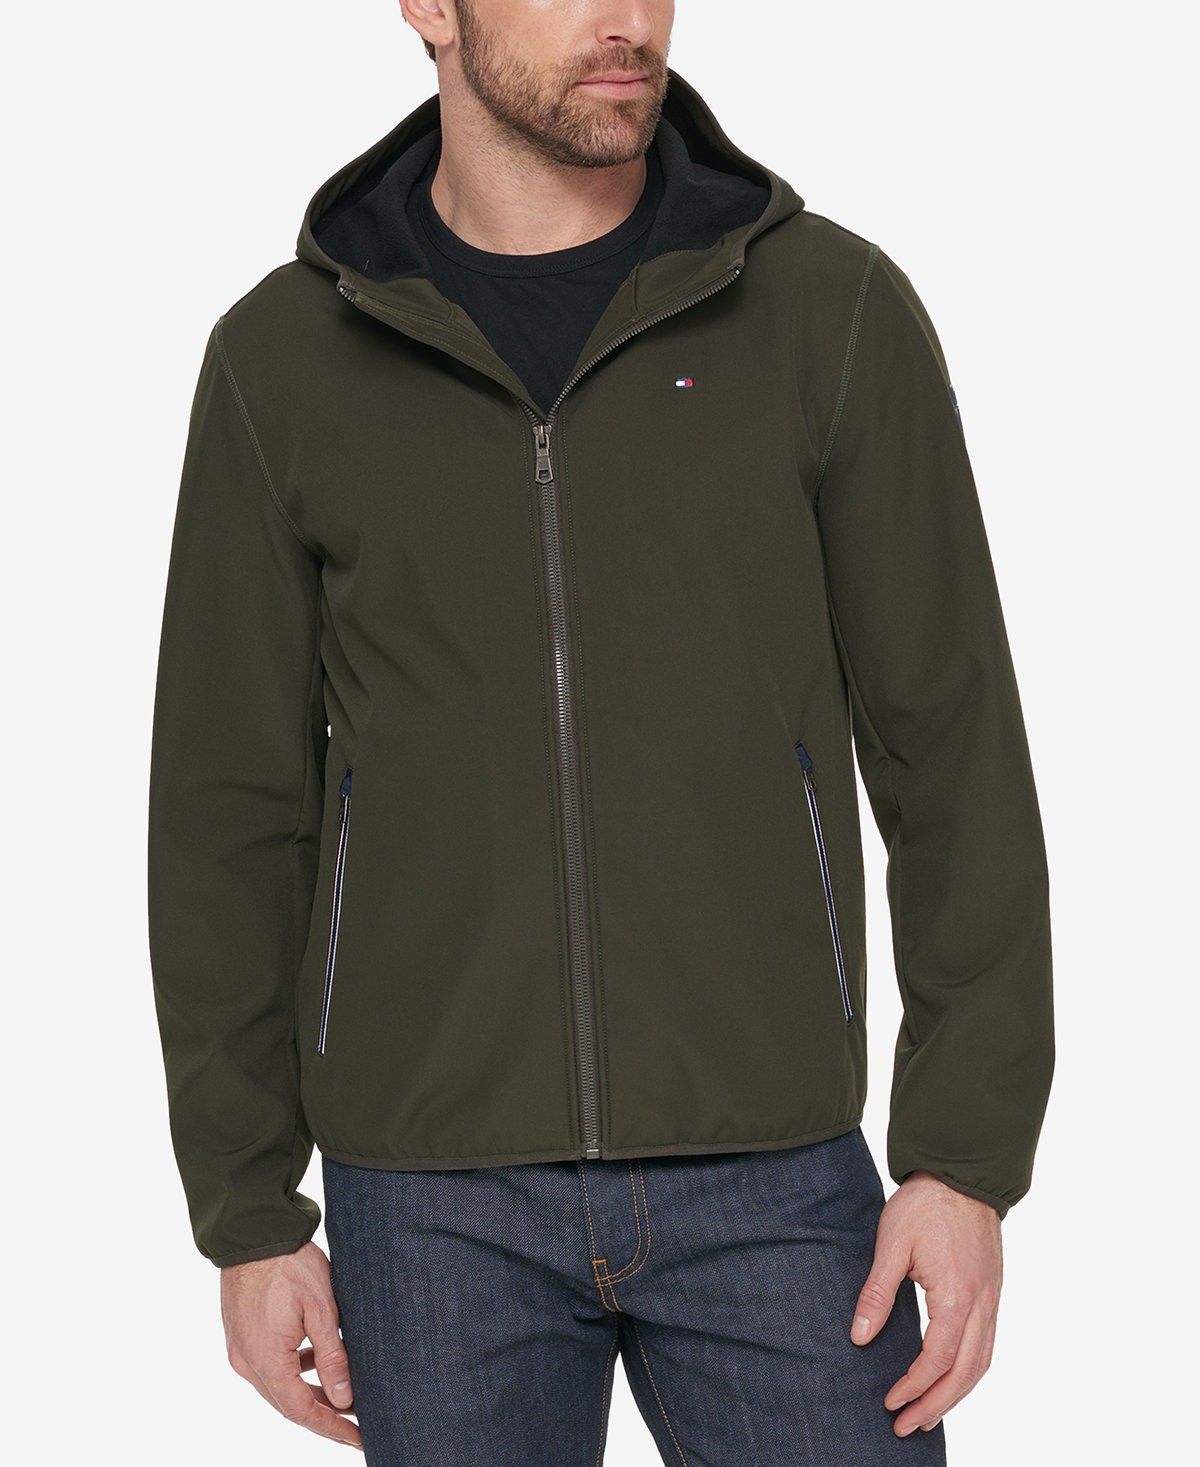 Tommy Hilfiger Hooded Soft Shell Jacket 4色